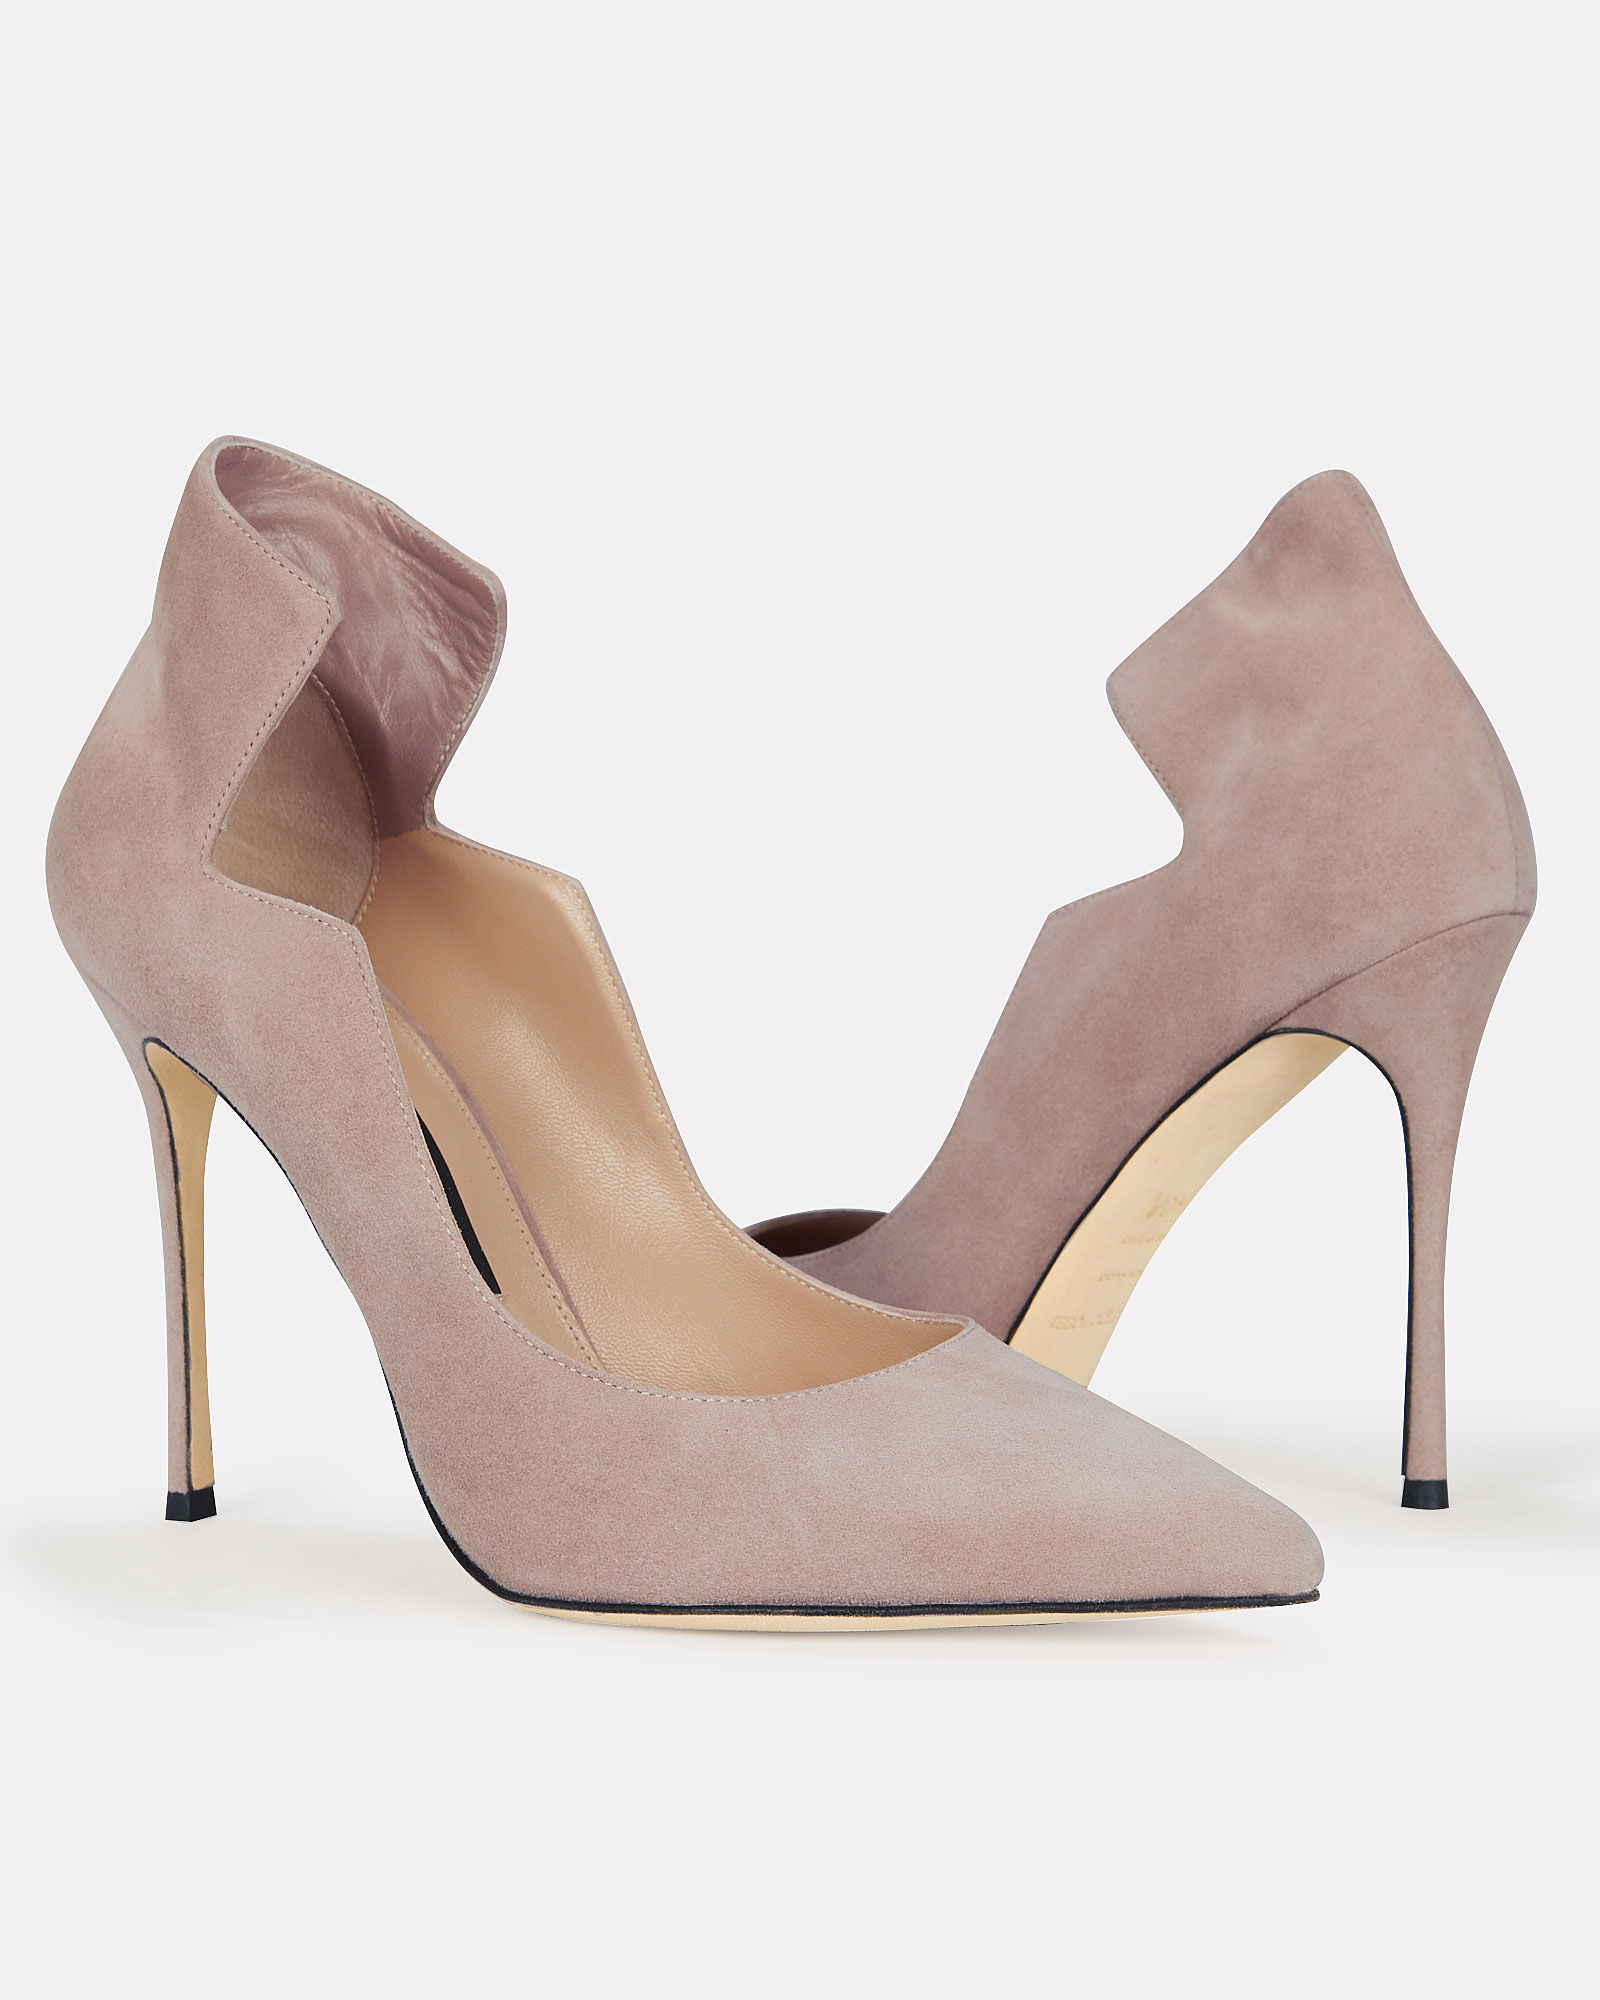 Godiva Wave Stiletto Pumps, BEIGE, hi-res